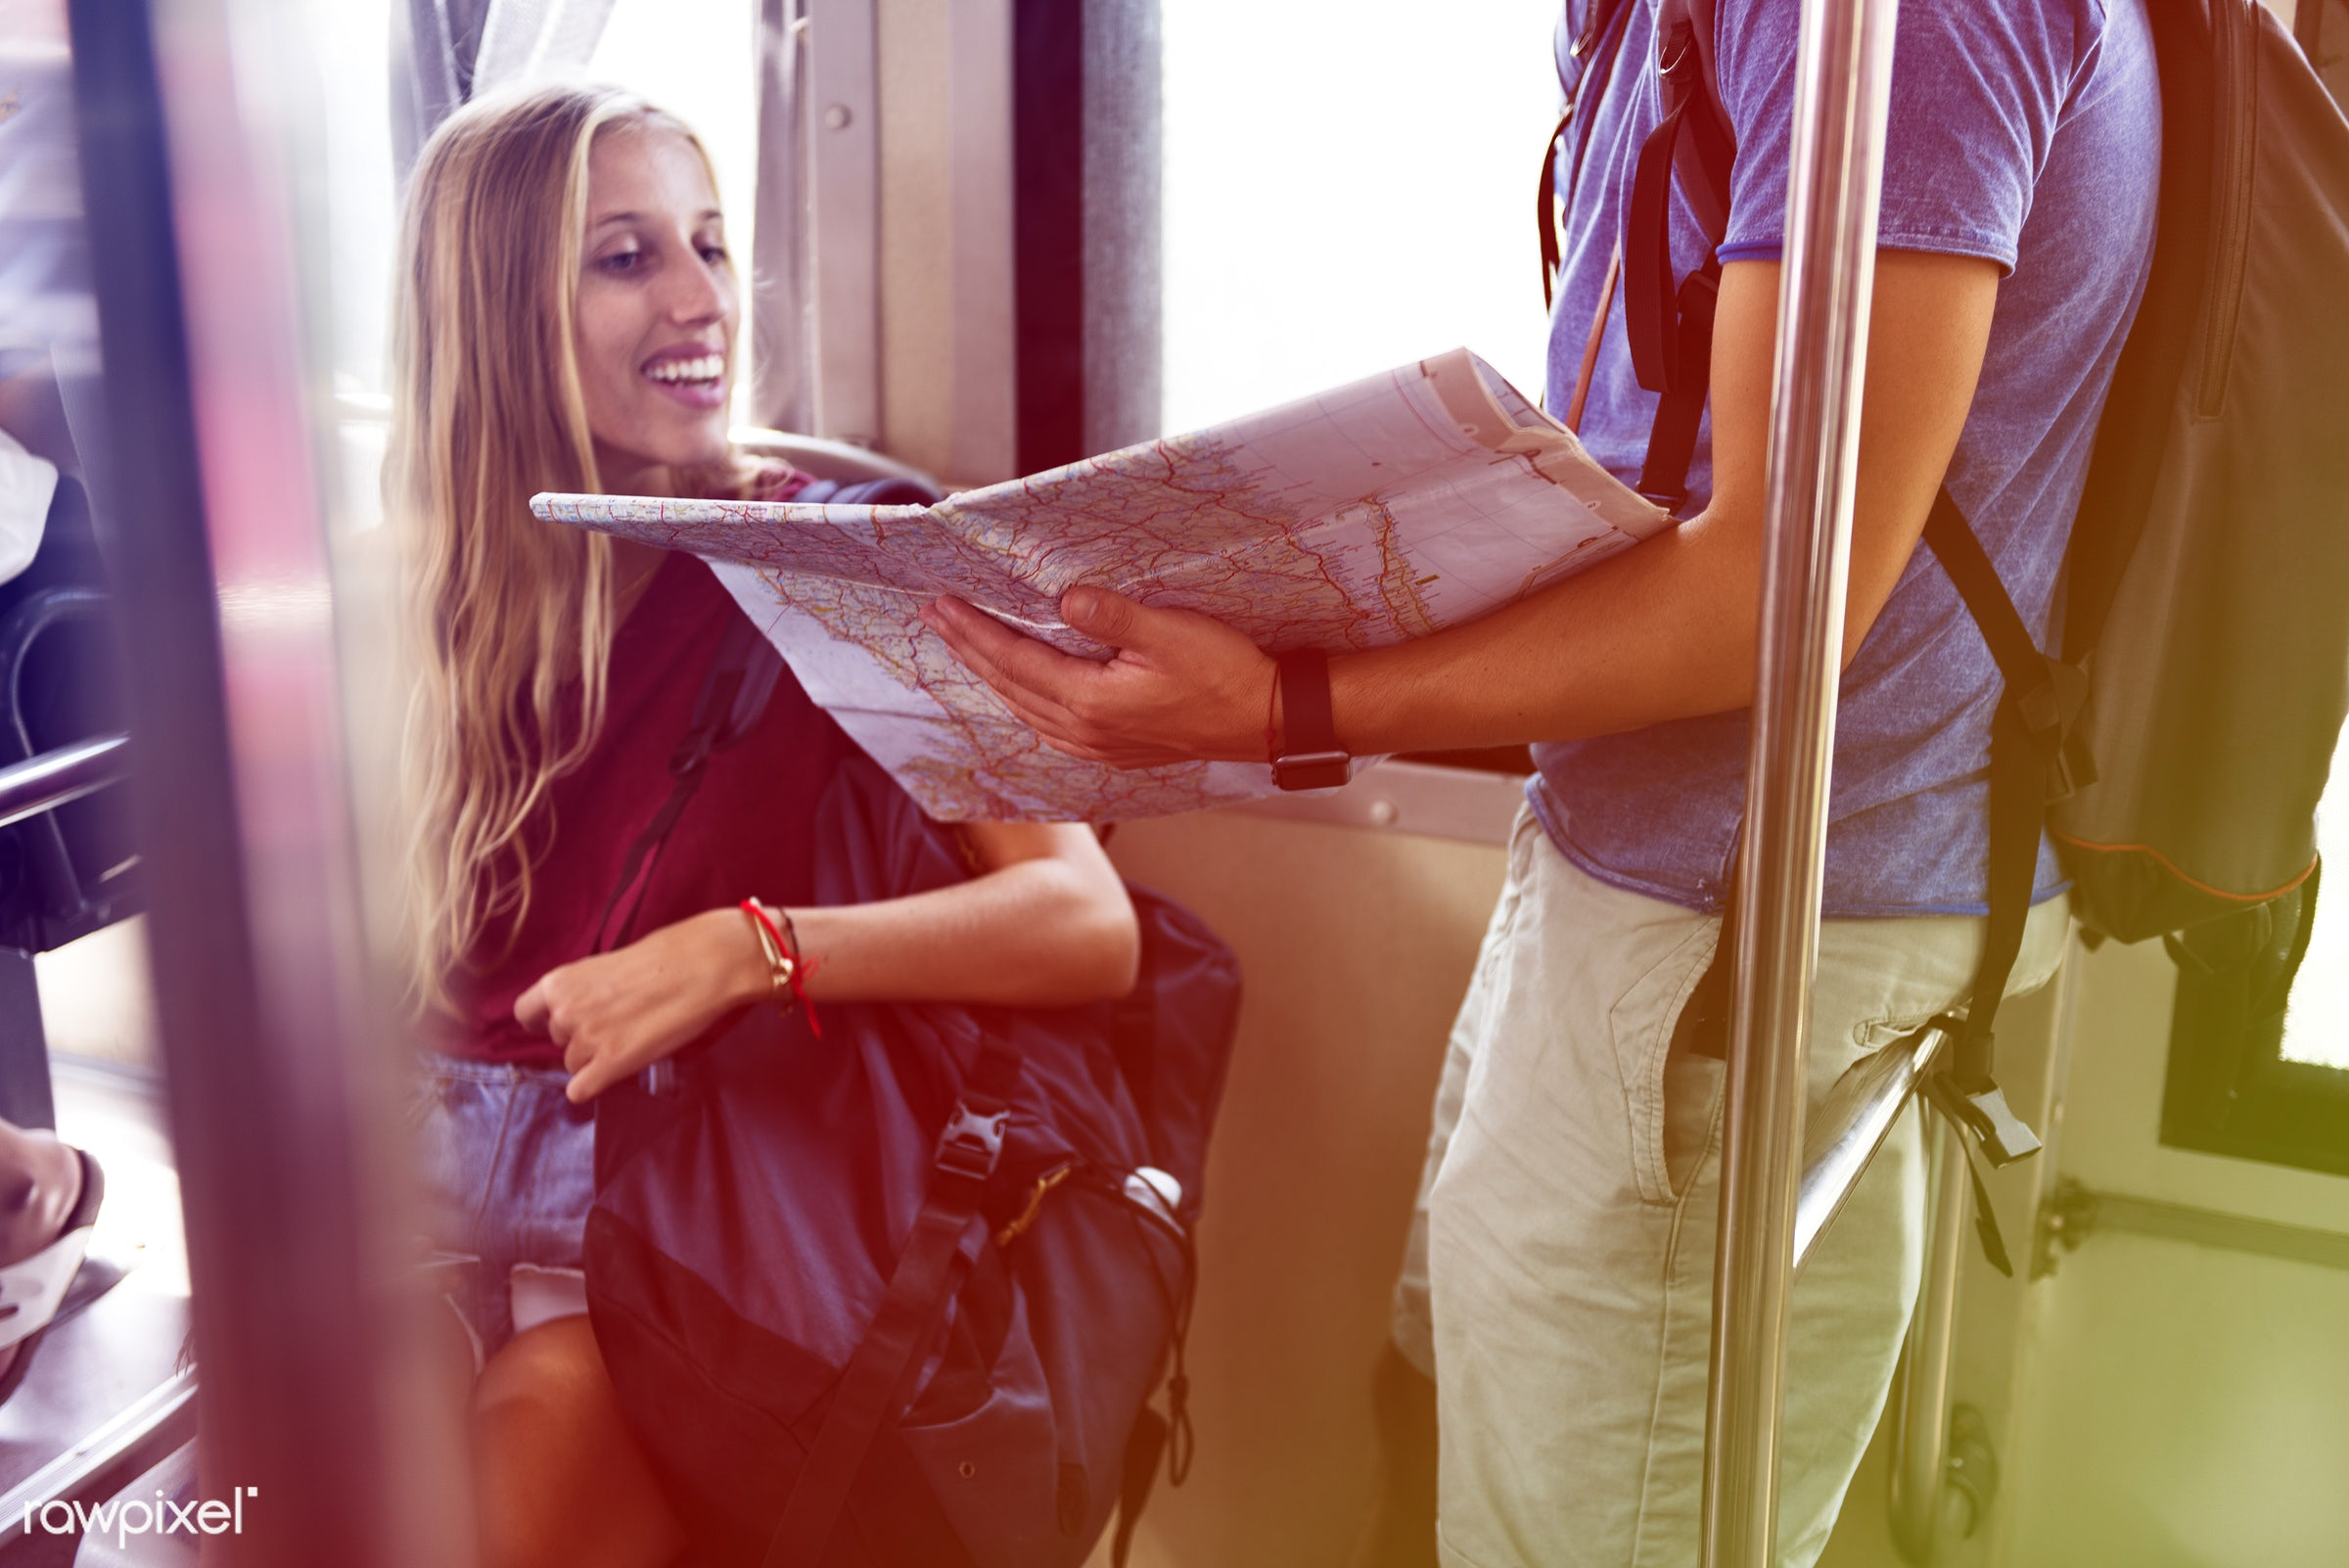 guide, backpackers, faded, vibrant, travel, bonding, people, wanderlust, city, love, staring, subway, woman, commute, train...